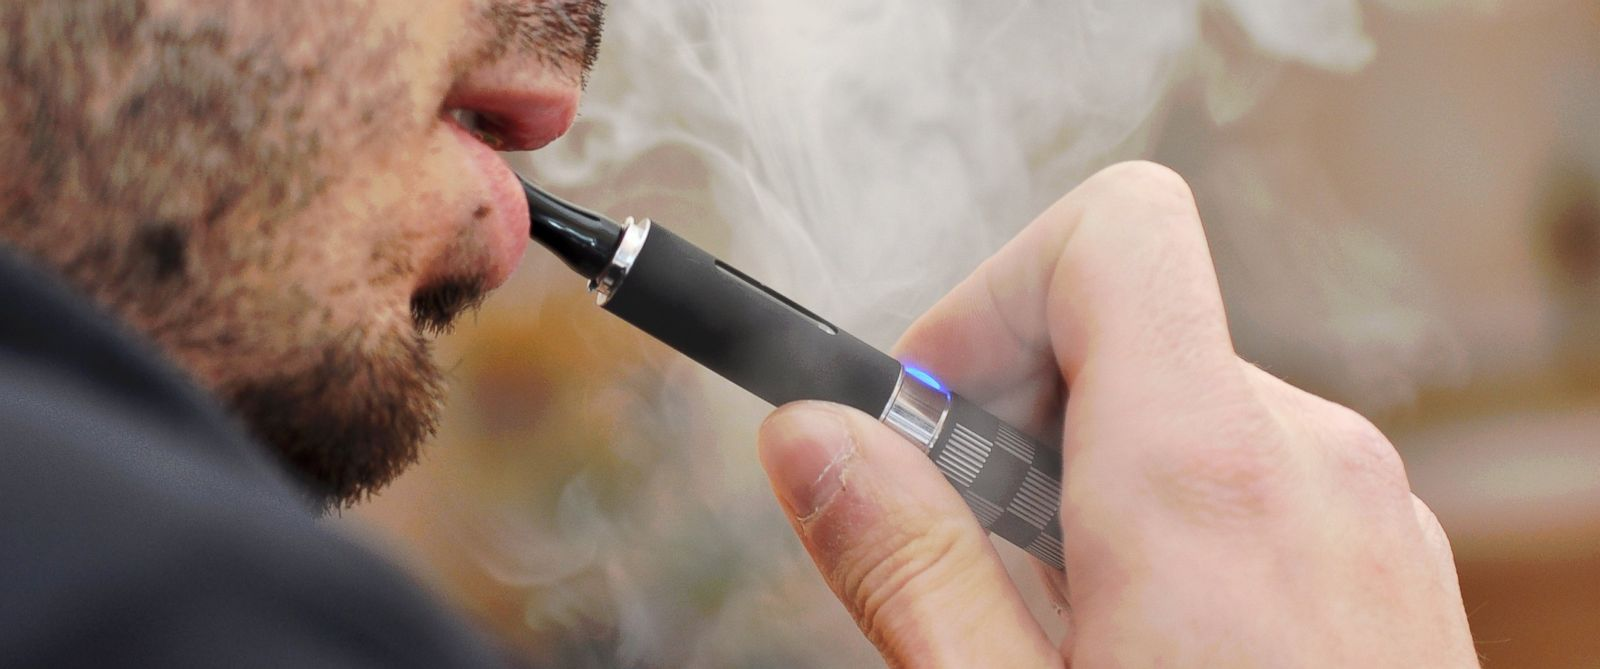 PHOTO: The science is mixed on whether e-cigarettes help or harm.